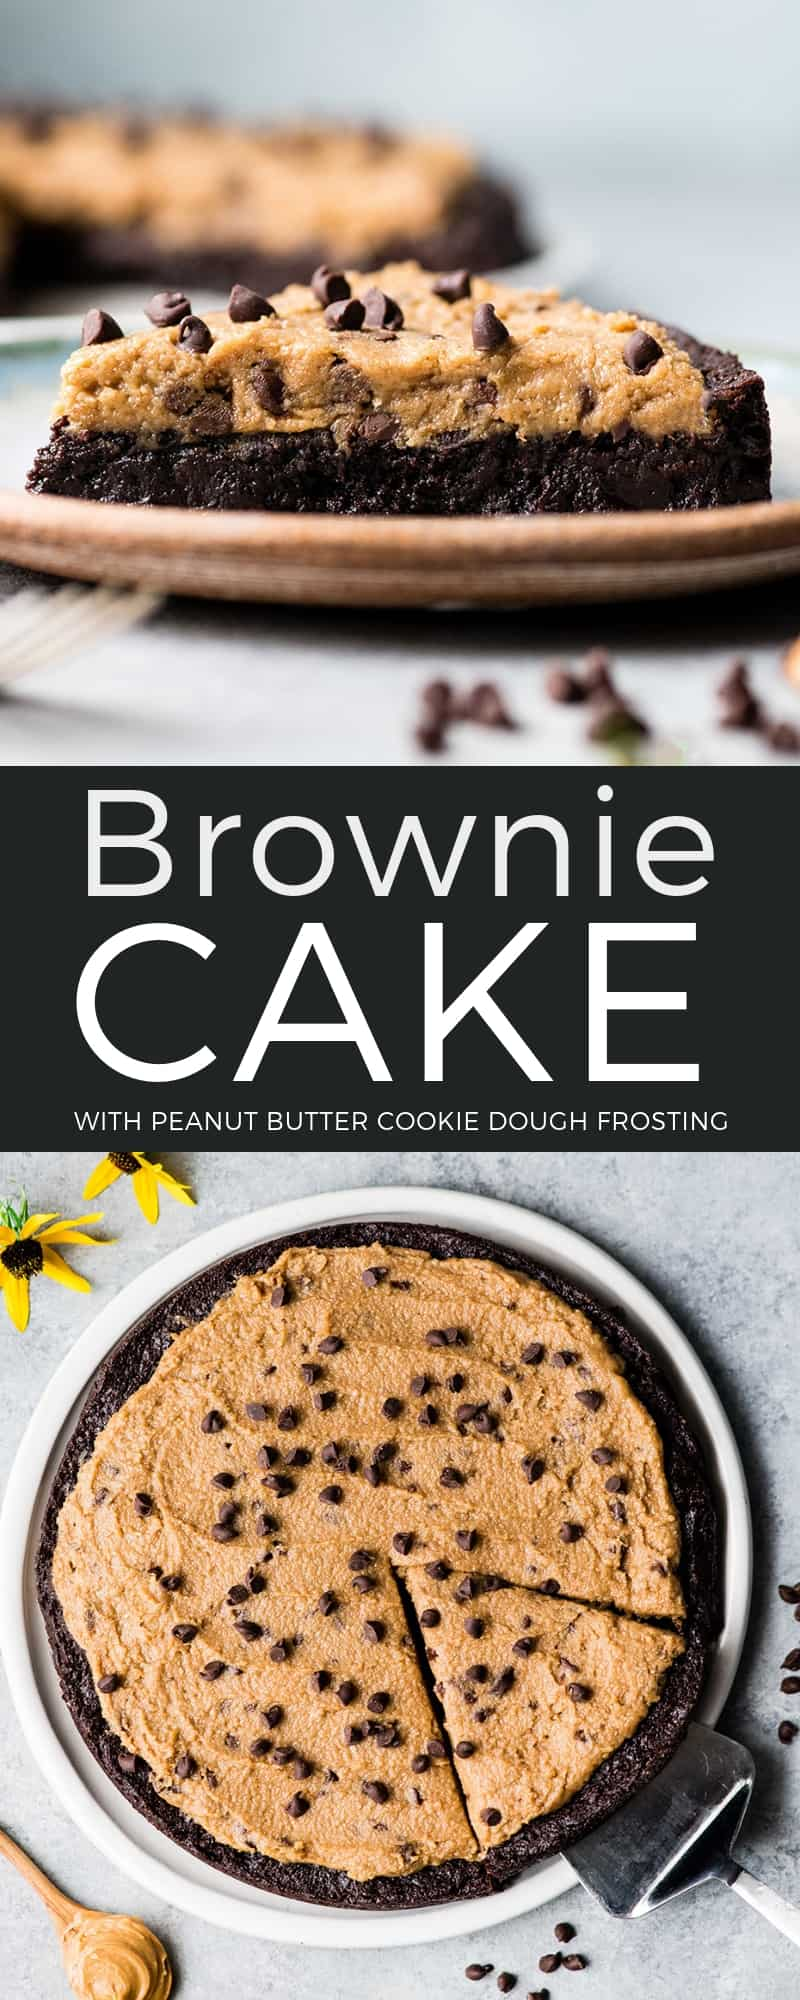 This Easy Fudge Brownie Cake Recipe with Peanut Butter Cookie Dough Frosting is basically the dessert of your dreams. A fudgy brownie cake is topped with a delicious peanut butter frosting that tastes like cookie dough. Plus it is gluten-free and easily made dairy-free! #browniecake #peanutbutterfrosting #recipe #dessert